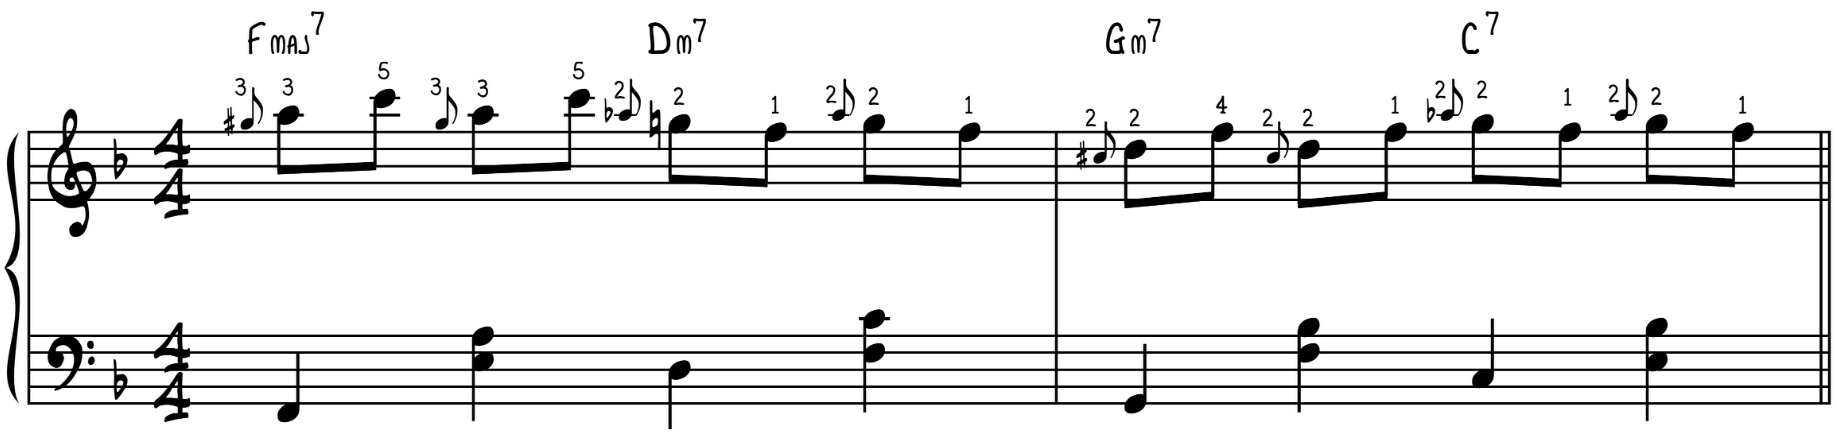 Gospel Slide Exercise w Fingerings for Bluesy Cocktail Piano